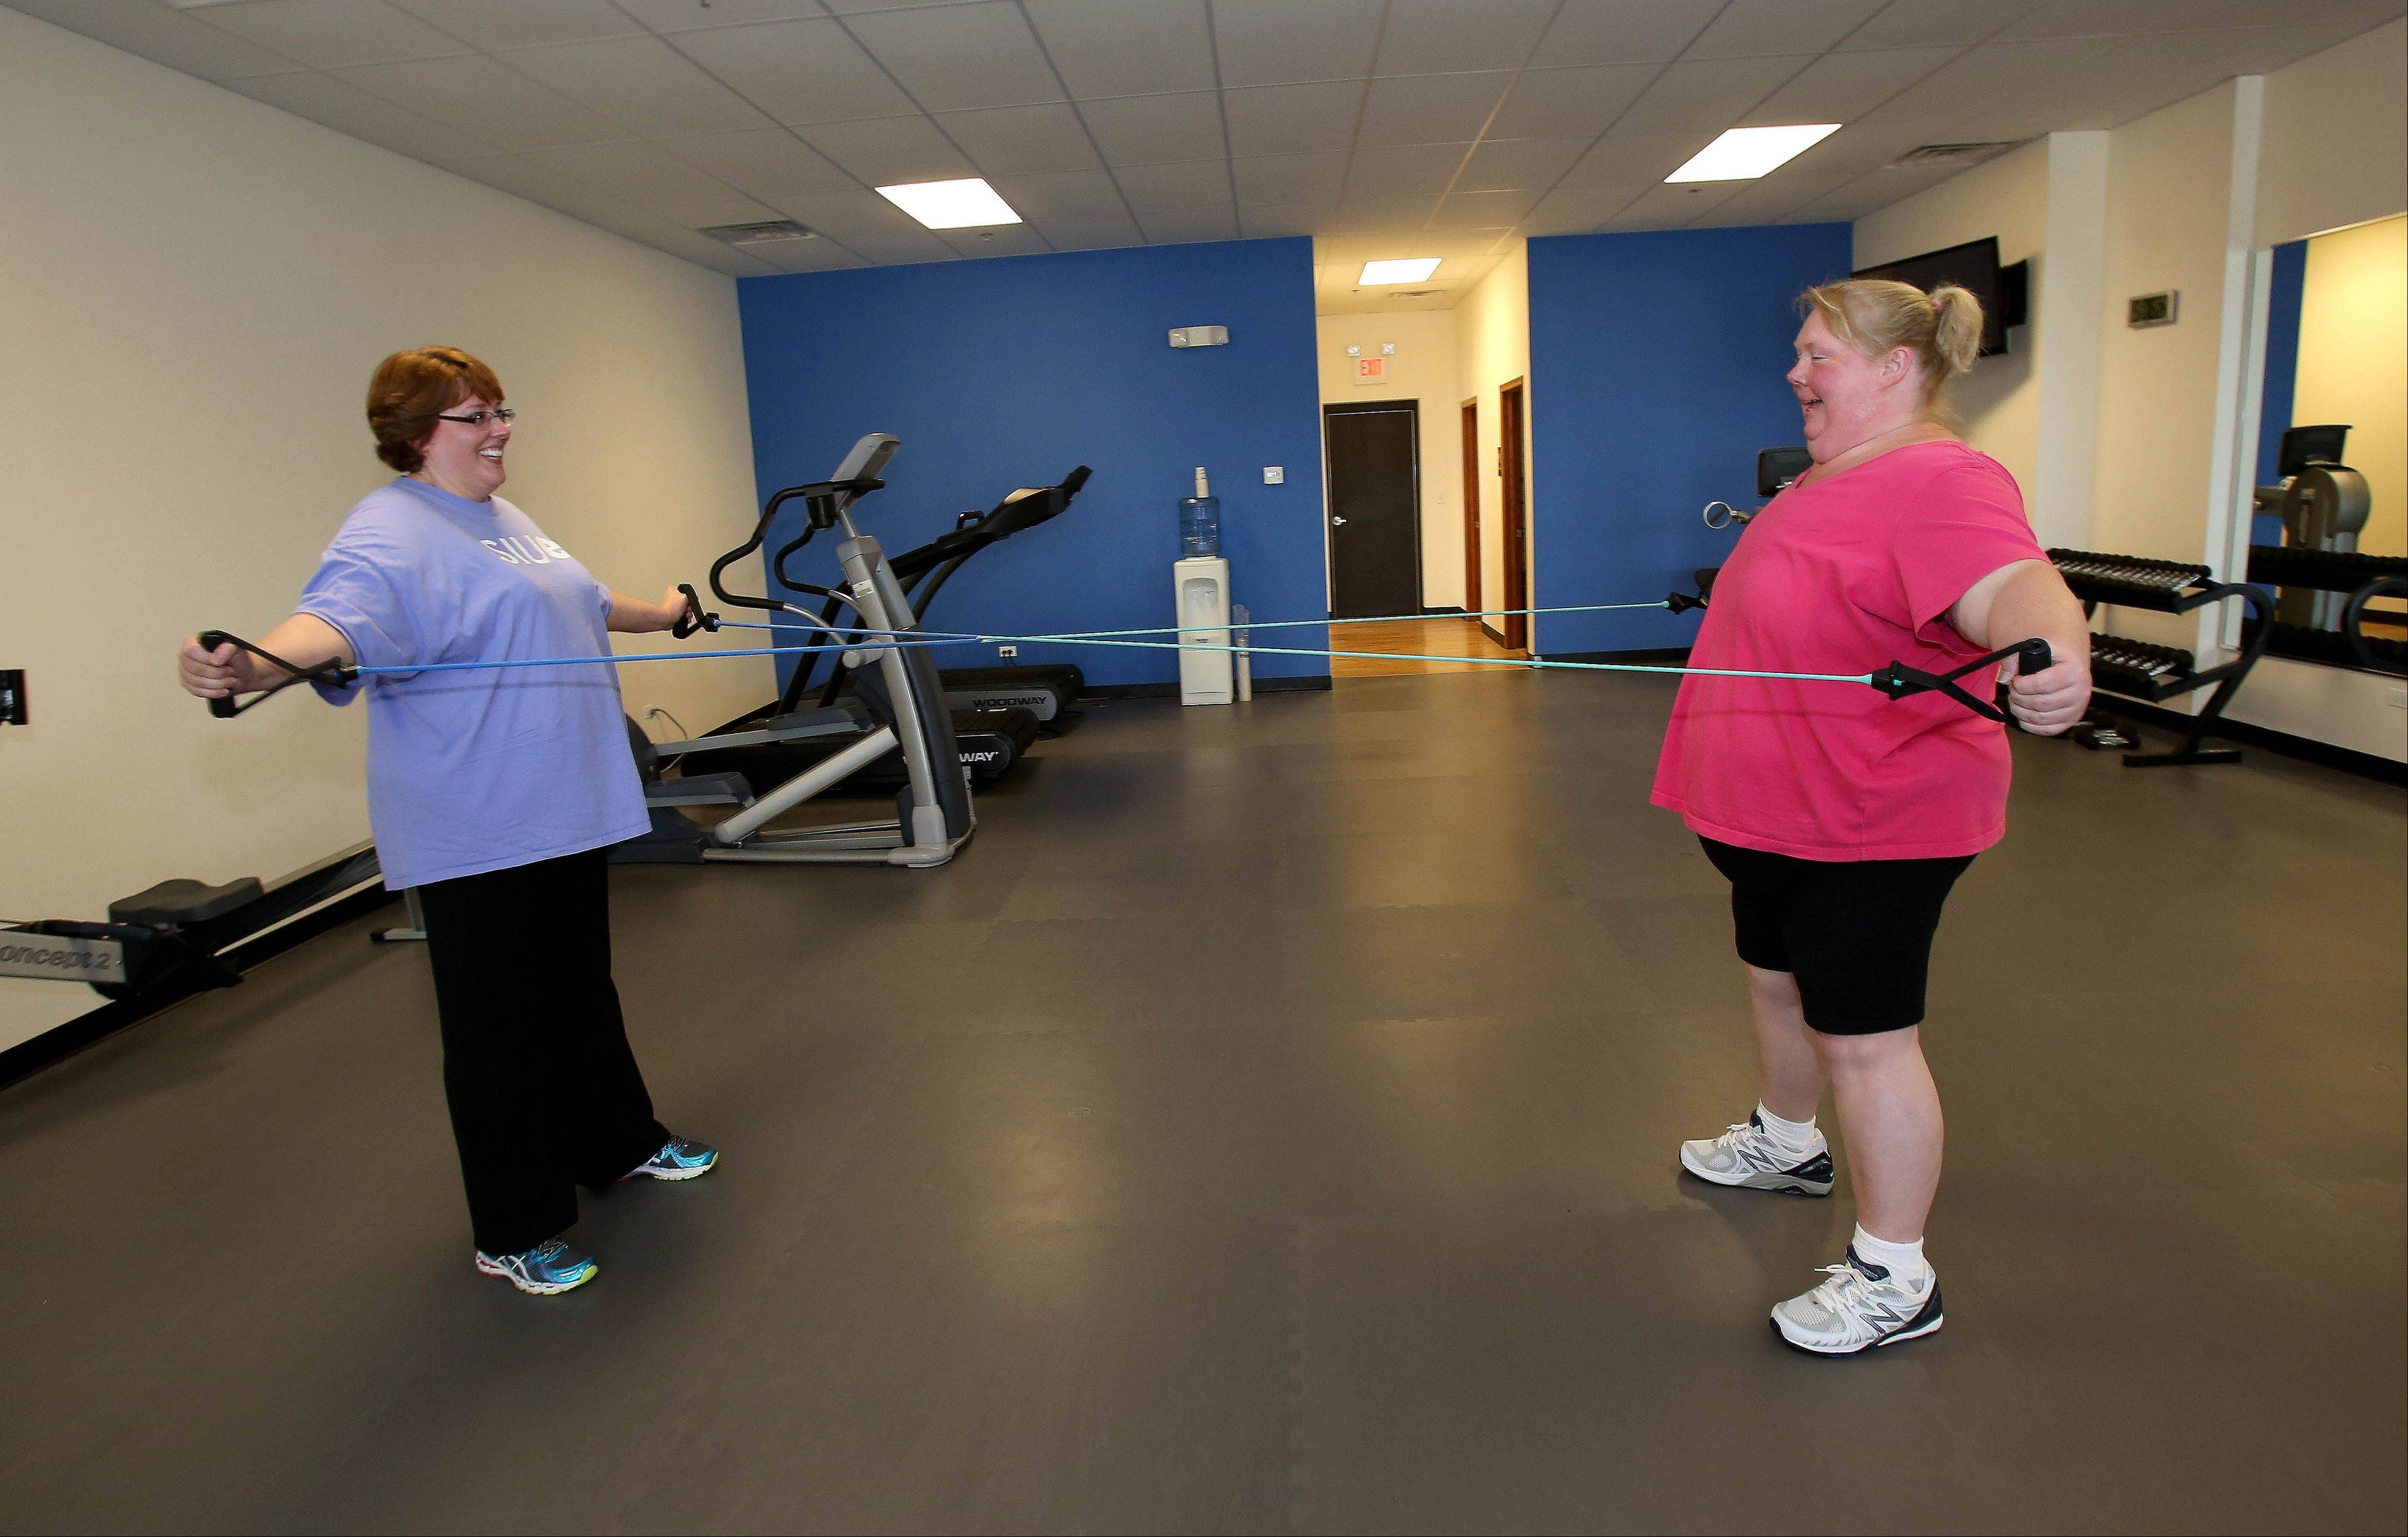 Diane Reiter of Aurora partners with Kim Tremblay of Bolingbrook for circuit training with resistance bands during a recent workout at Downsize Fitness, a new gym in Naperville for people who have at least 50 pounds to lose.